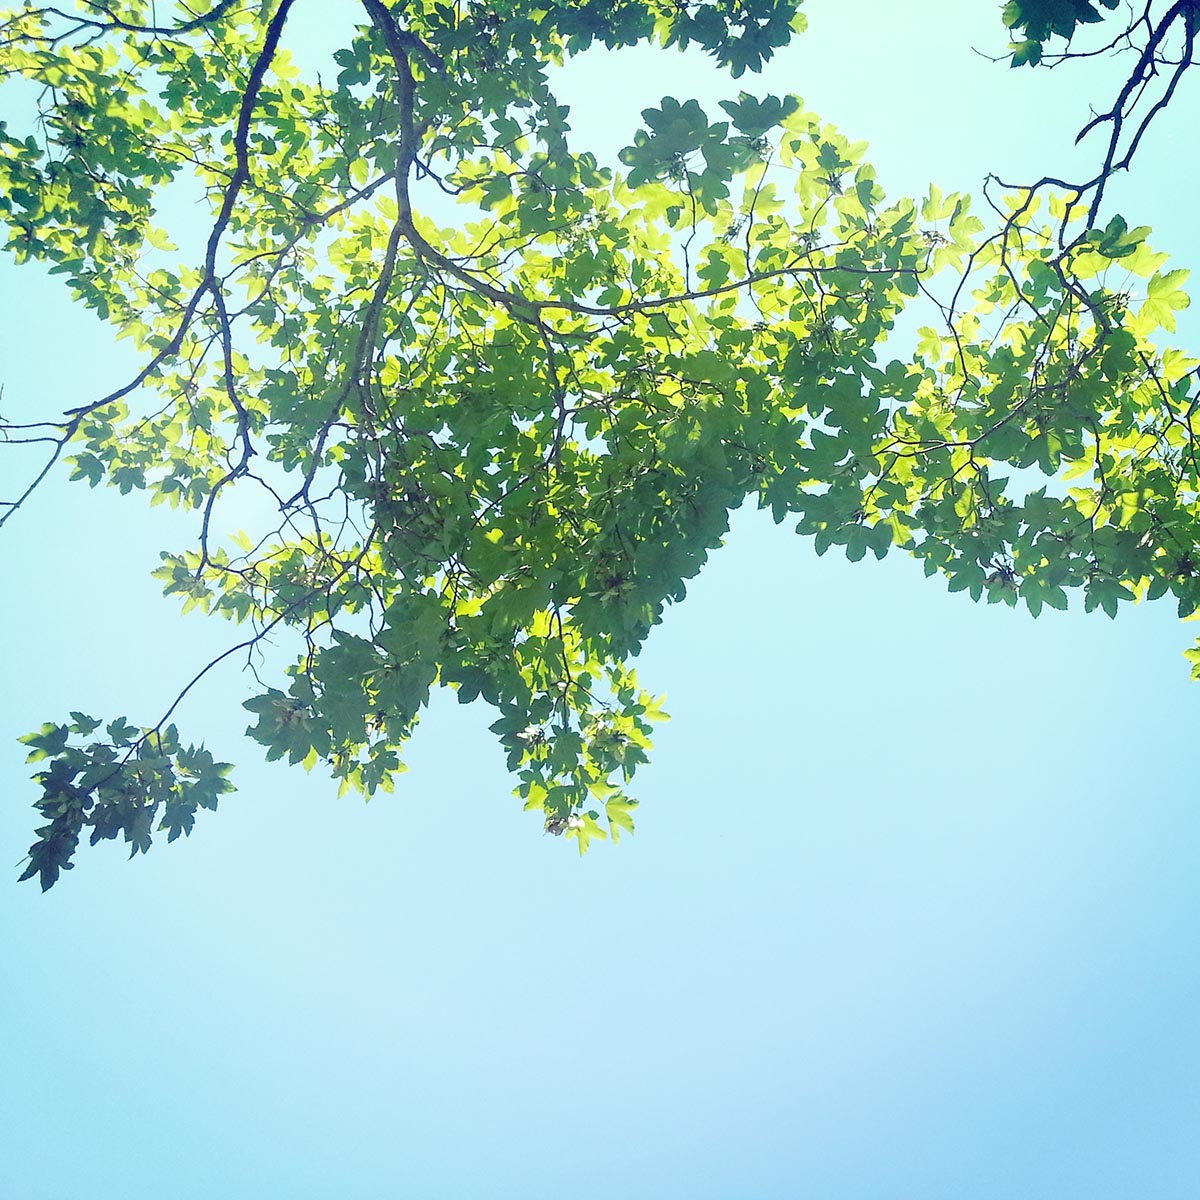 Free stock photo Border of green leaves against a blue sky